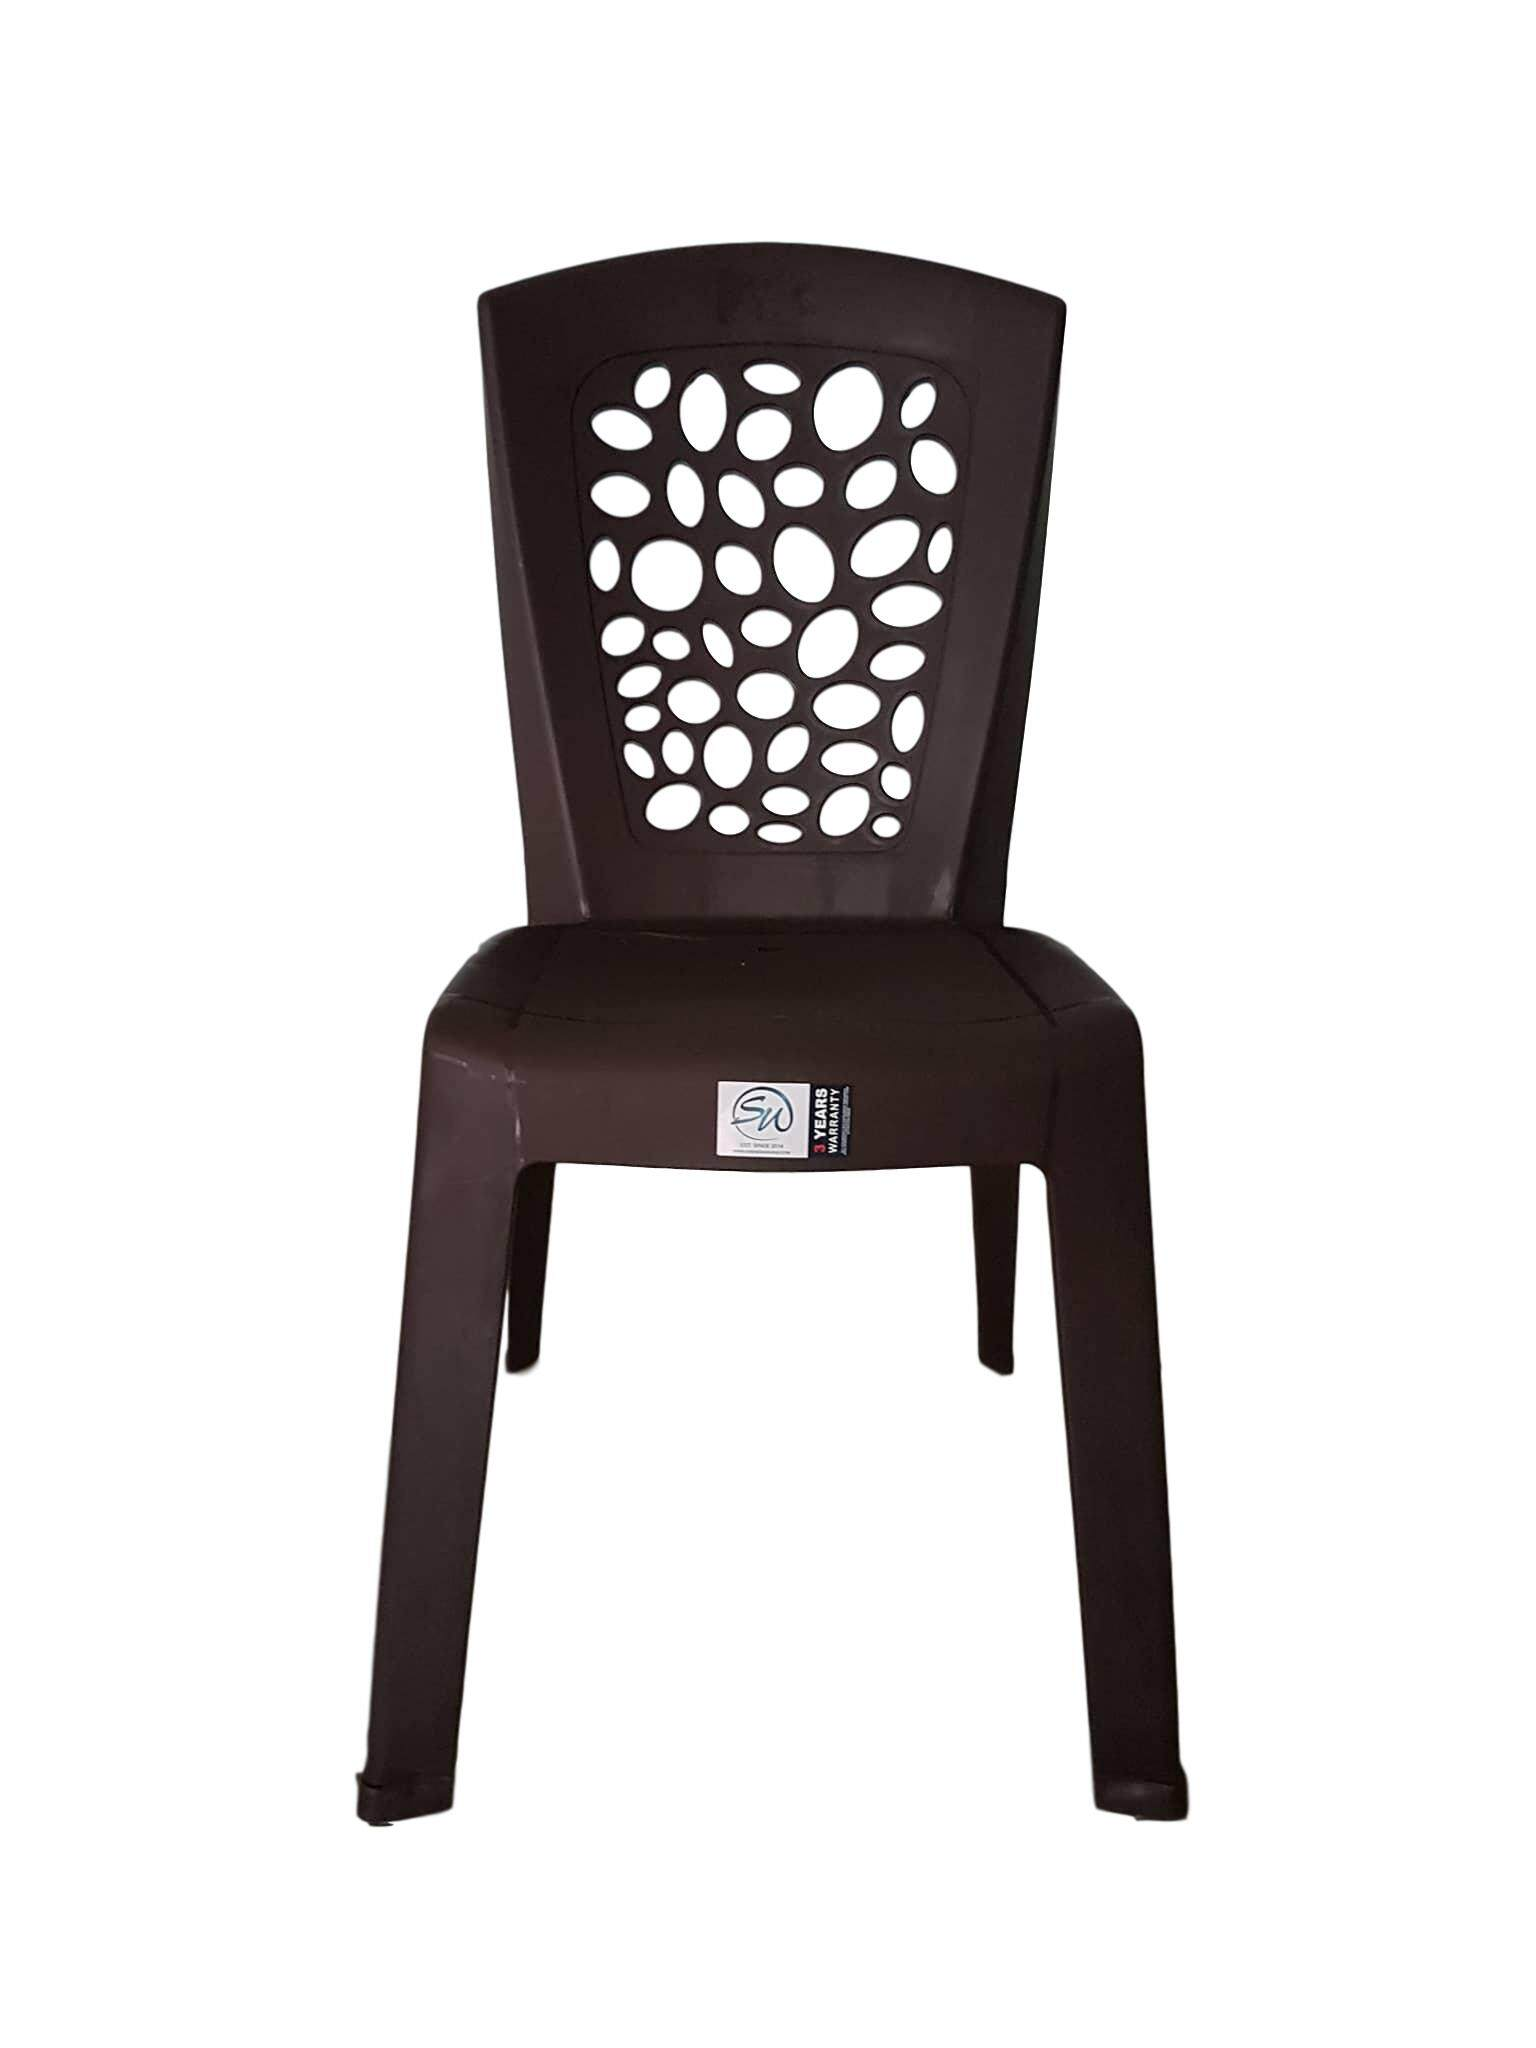 Plastic Chair -Cafe style- Total 4 Units